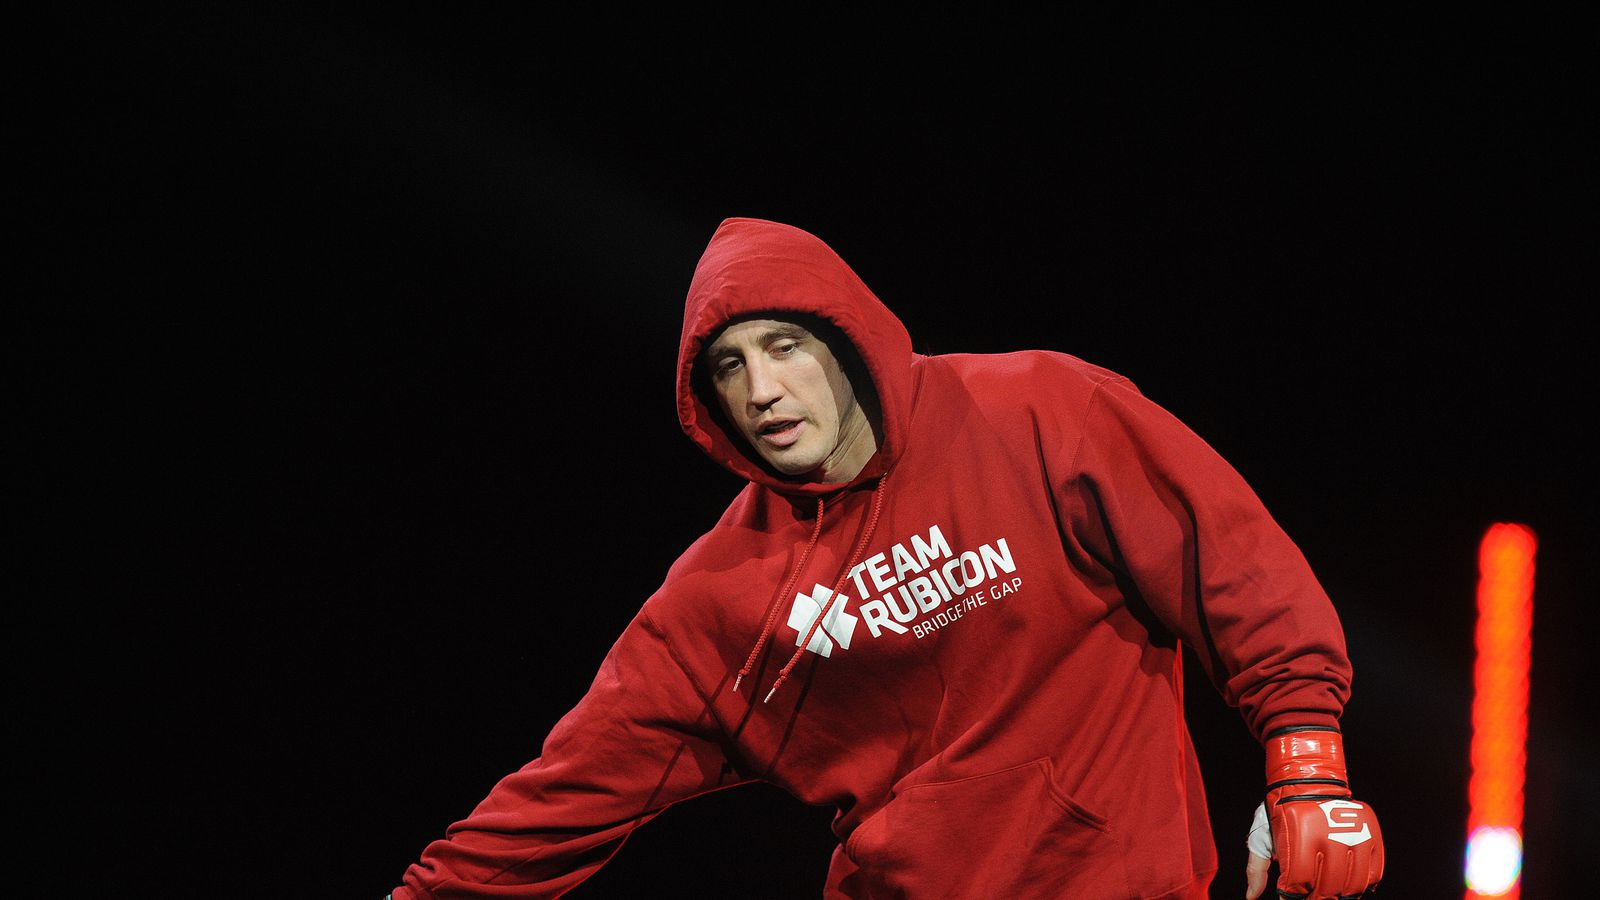 Roger Gracie vs. Tim Kennedy targeted for UFC 162, not UFC ...